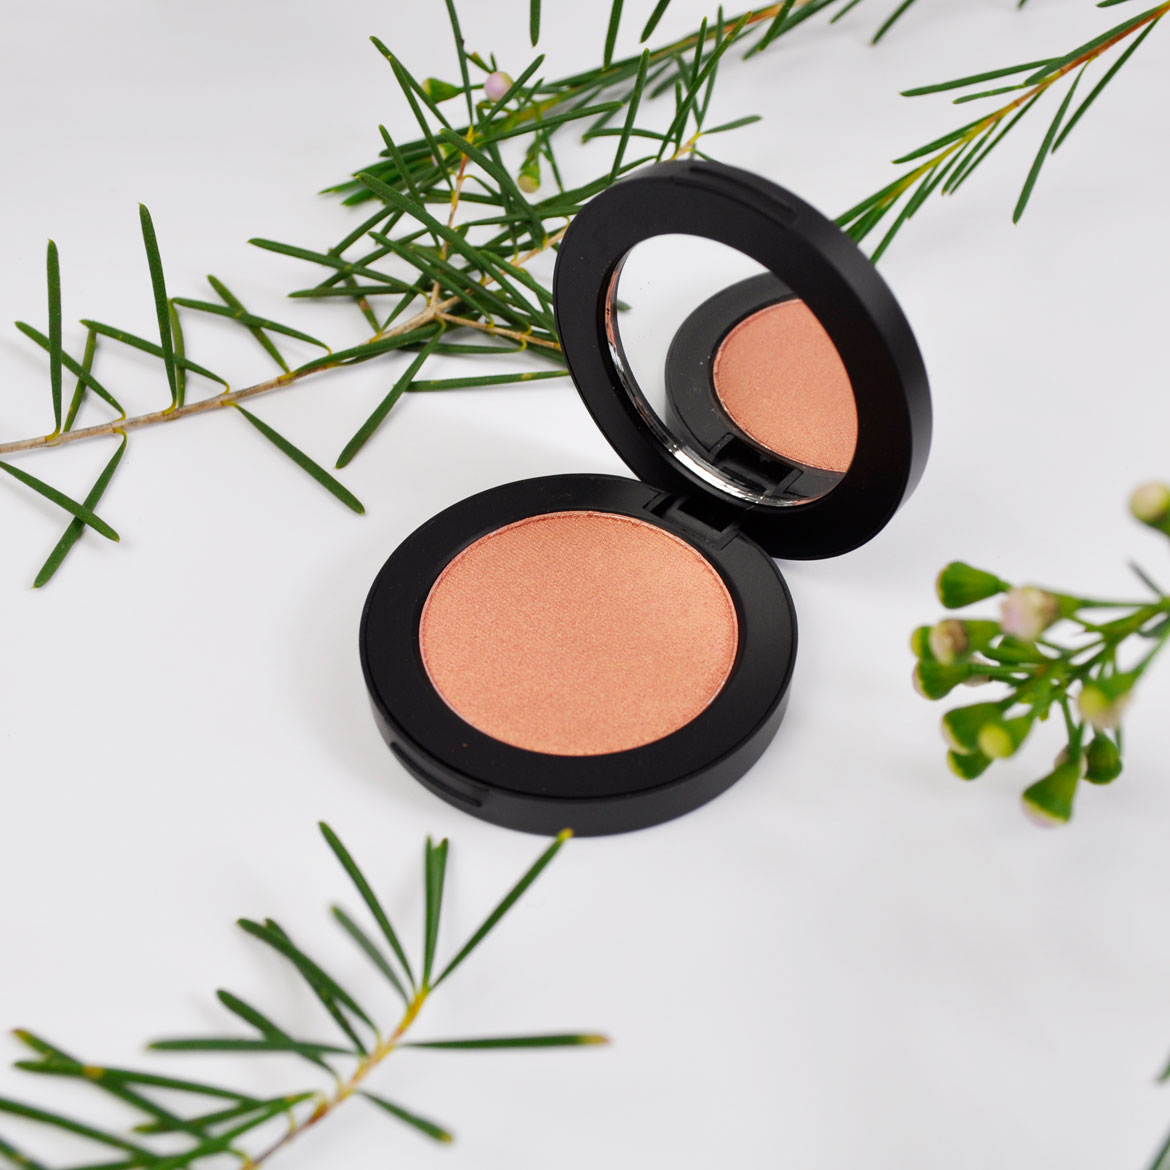 Youngblood Mineral Cosmetics Blush